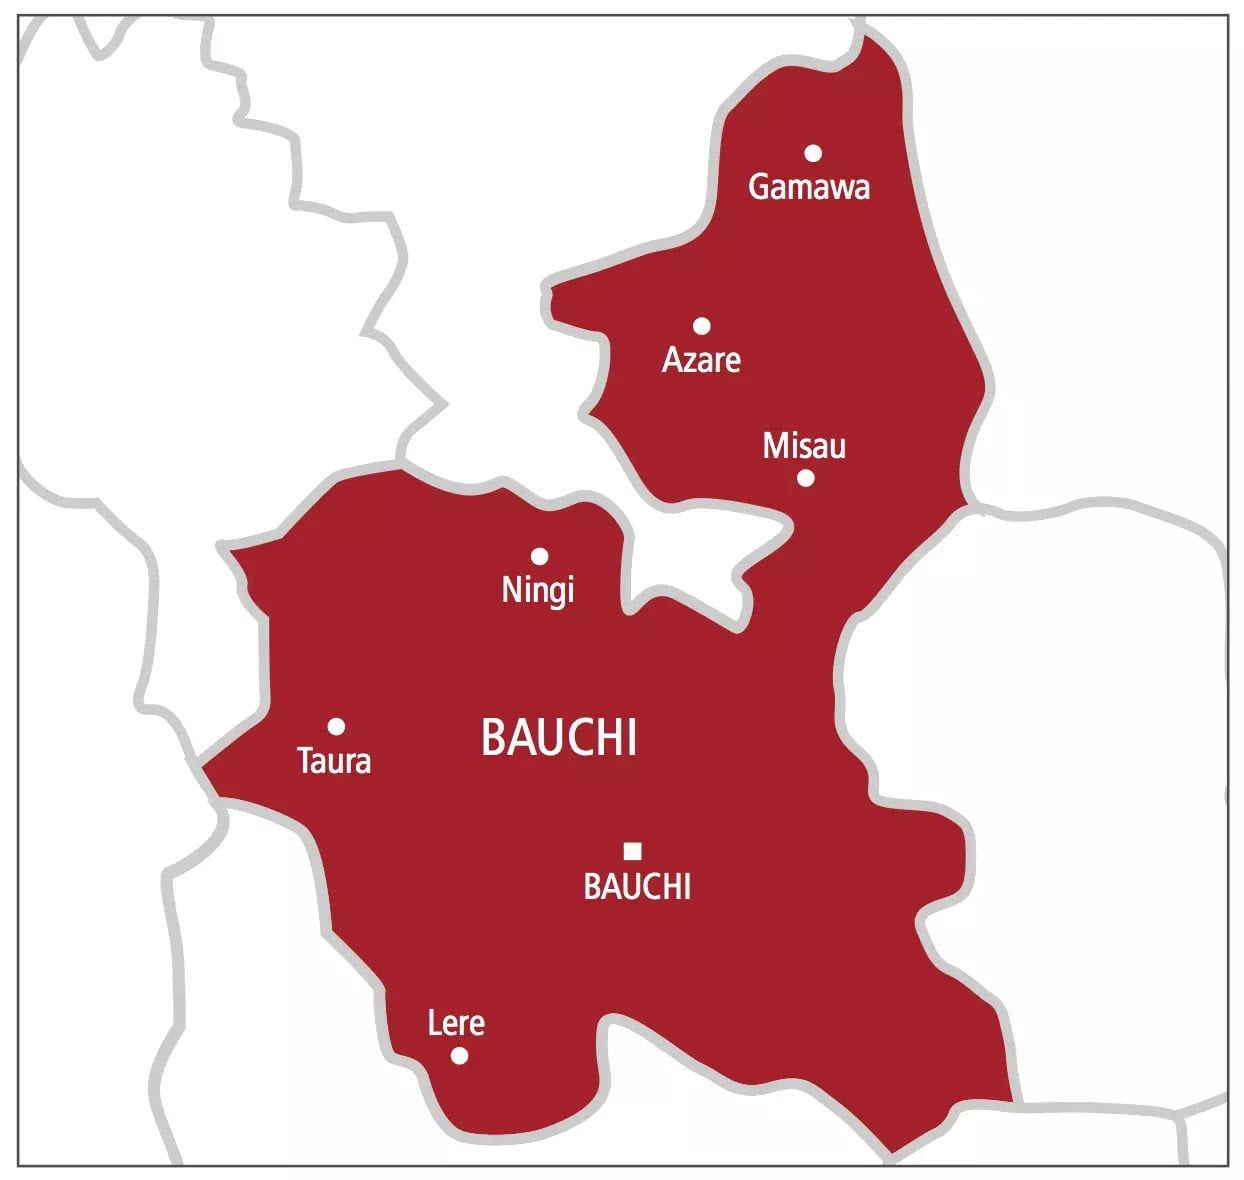 The Bauchi State Government Has Ordered A 14 Day Lockdown And Closure Of All The State Borders With Effect From 6 Pm. On April 2, As Part Of Efforts To Control The Spread Of Coronavirus In The State.